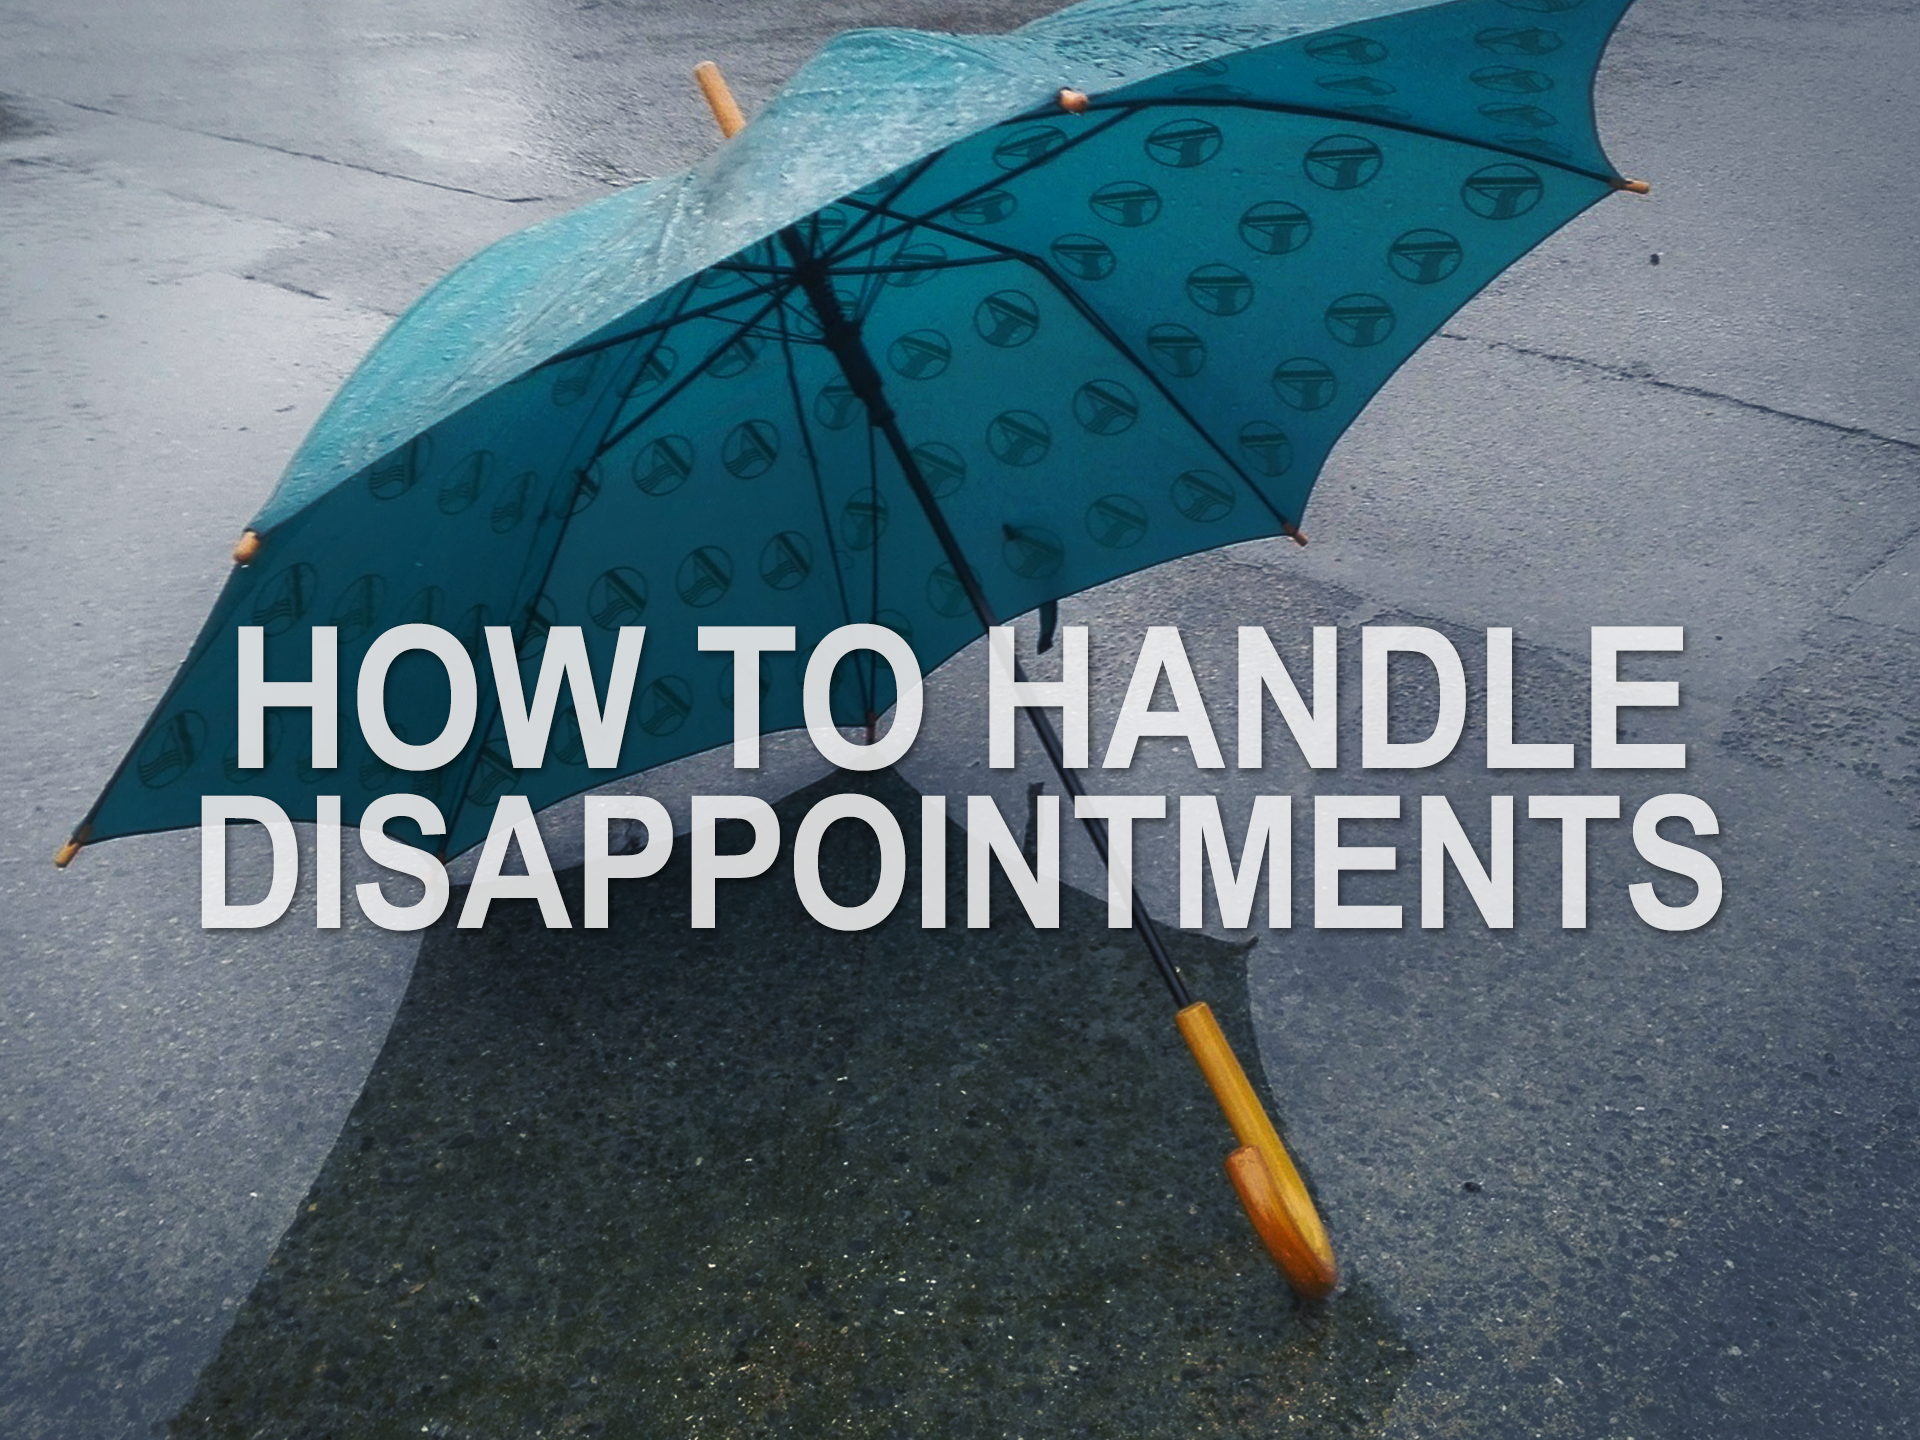 090819 how to handle disappointments.png